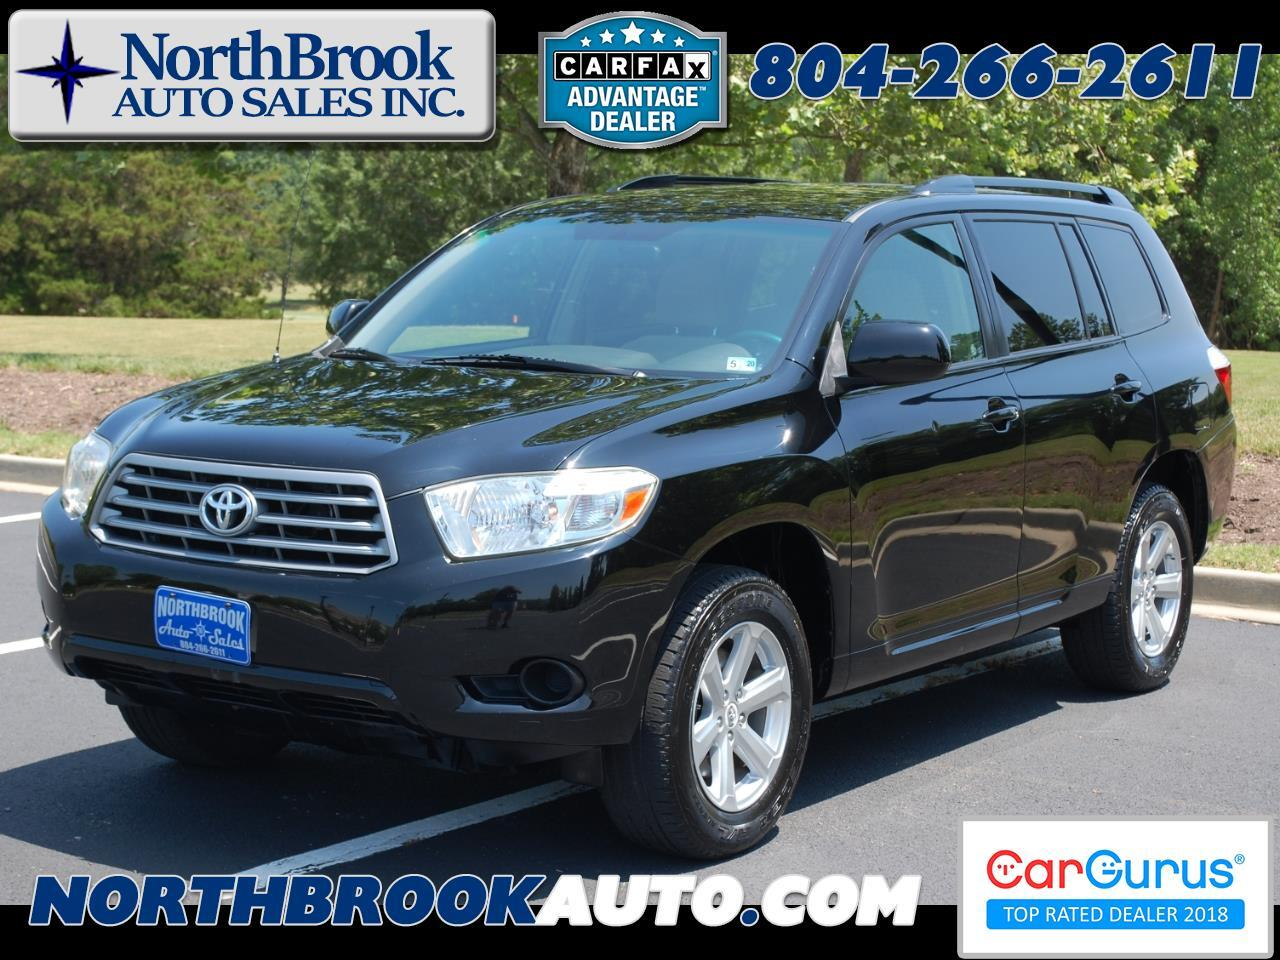 2010 Toyota Highlander 4WD 4dr V6  Base (Natl)